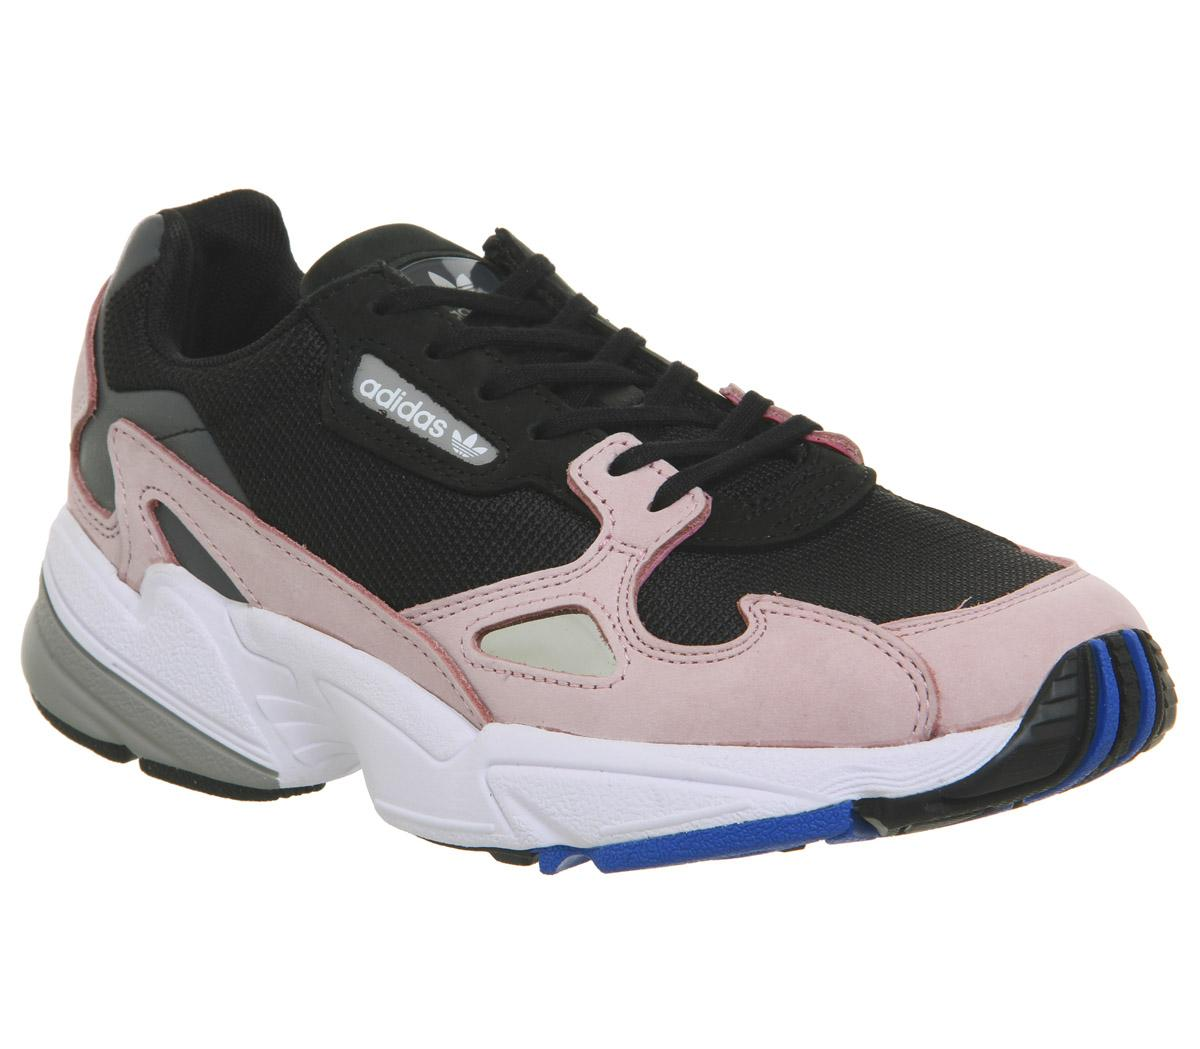 adidas Women's Falcon W, CORE BlackCORE BlackLT Pink, 7 US